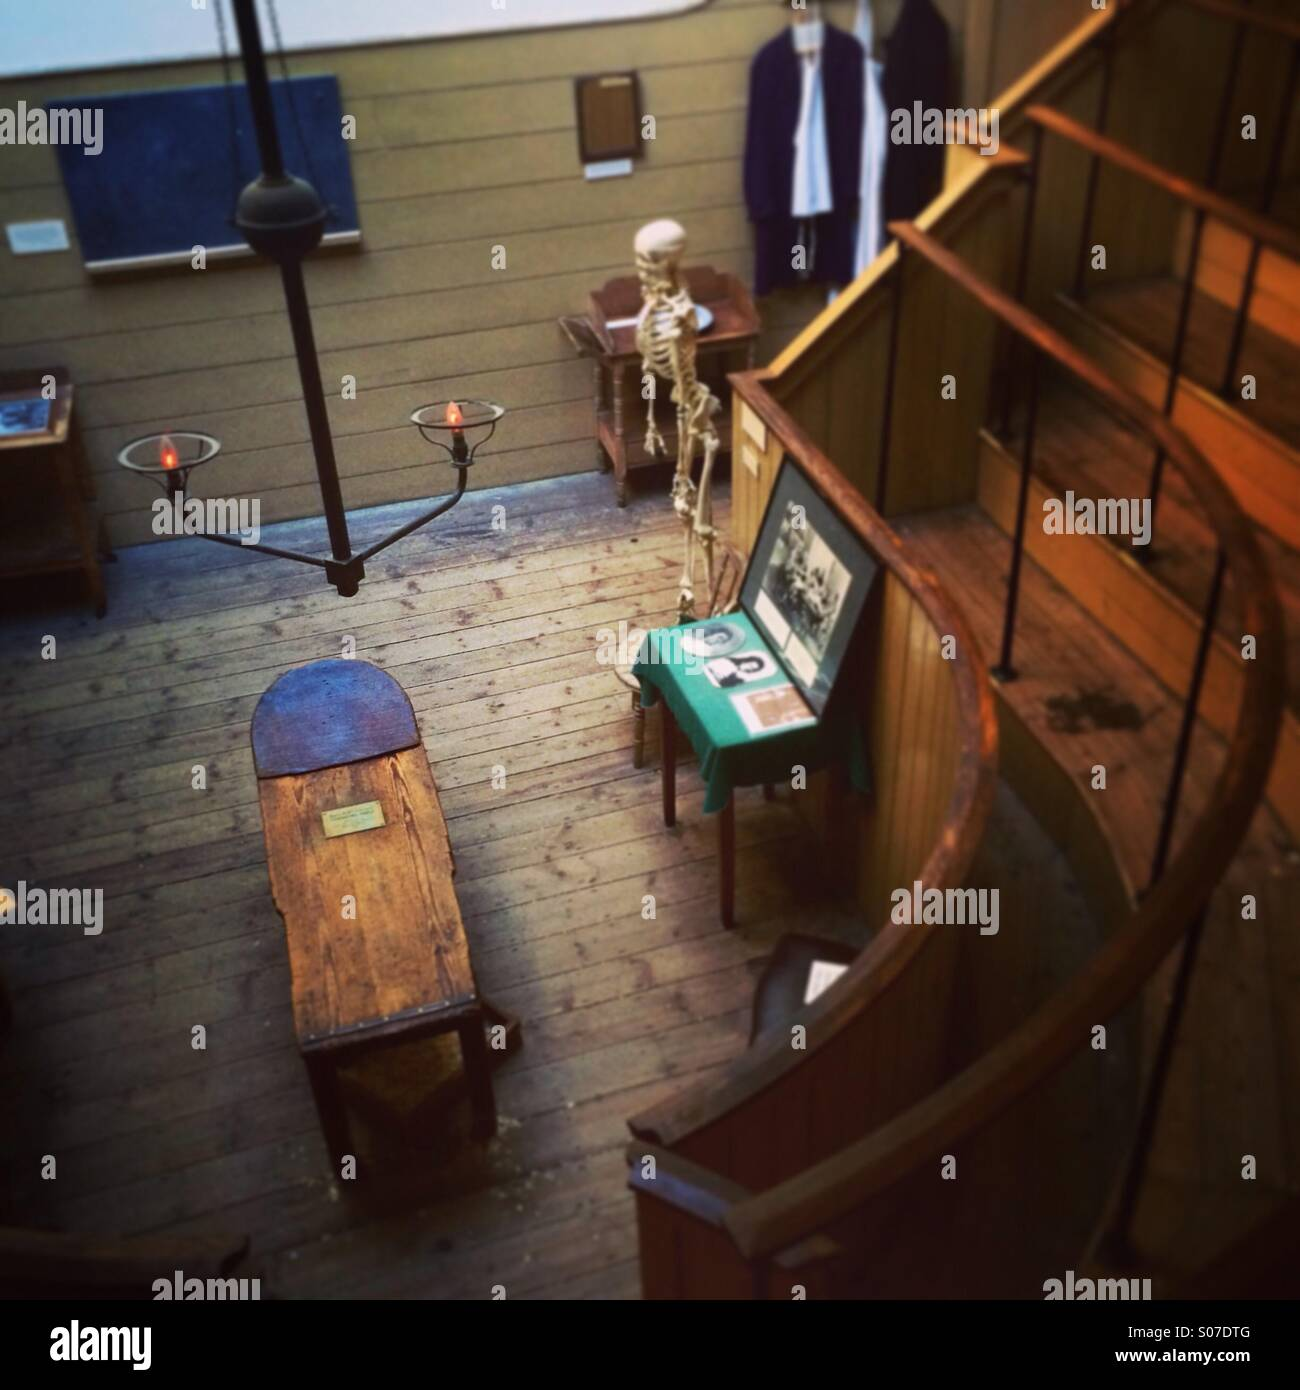 The Old Operating Theatre Museum in London - Stock Image